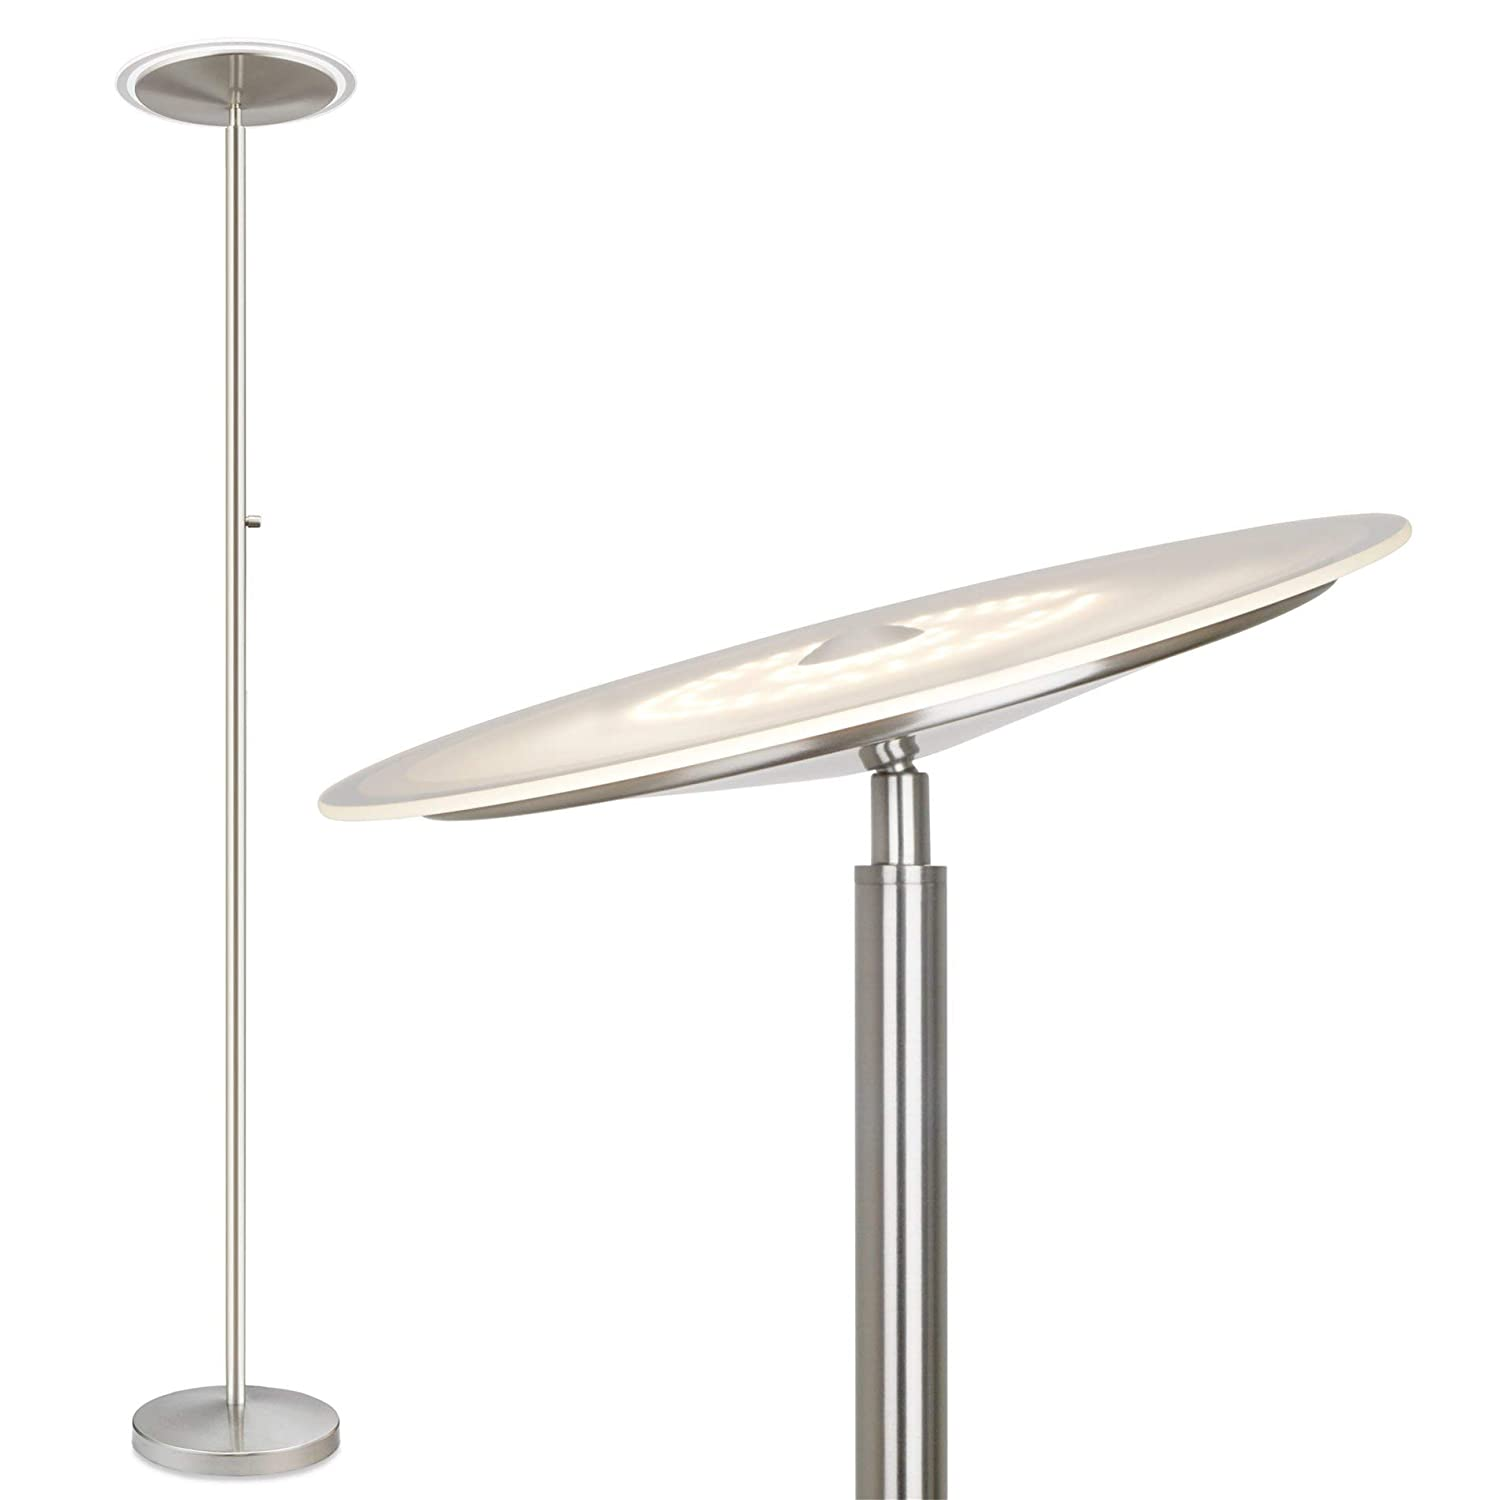 Kira Home Horizon 70 Modern LED Torchiere Floor Lamp 36W, 250W eq. , Glass Diffuser, Dimmable, Timer and Wall Switch Compatible, Adjustable Head, 3000k Warm White Light, Brushed Nickel Finish